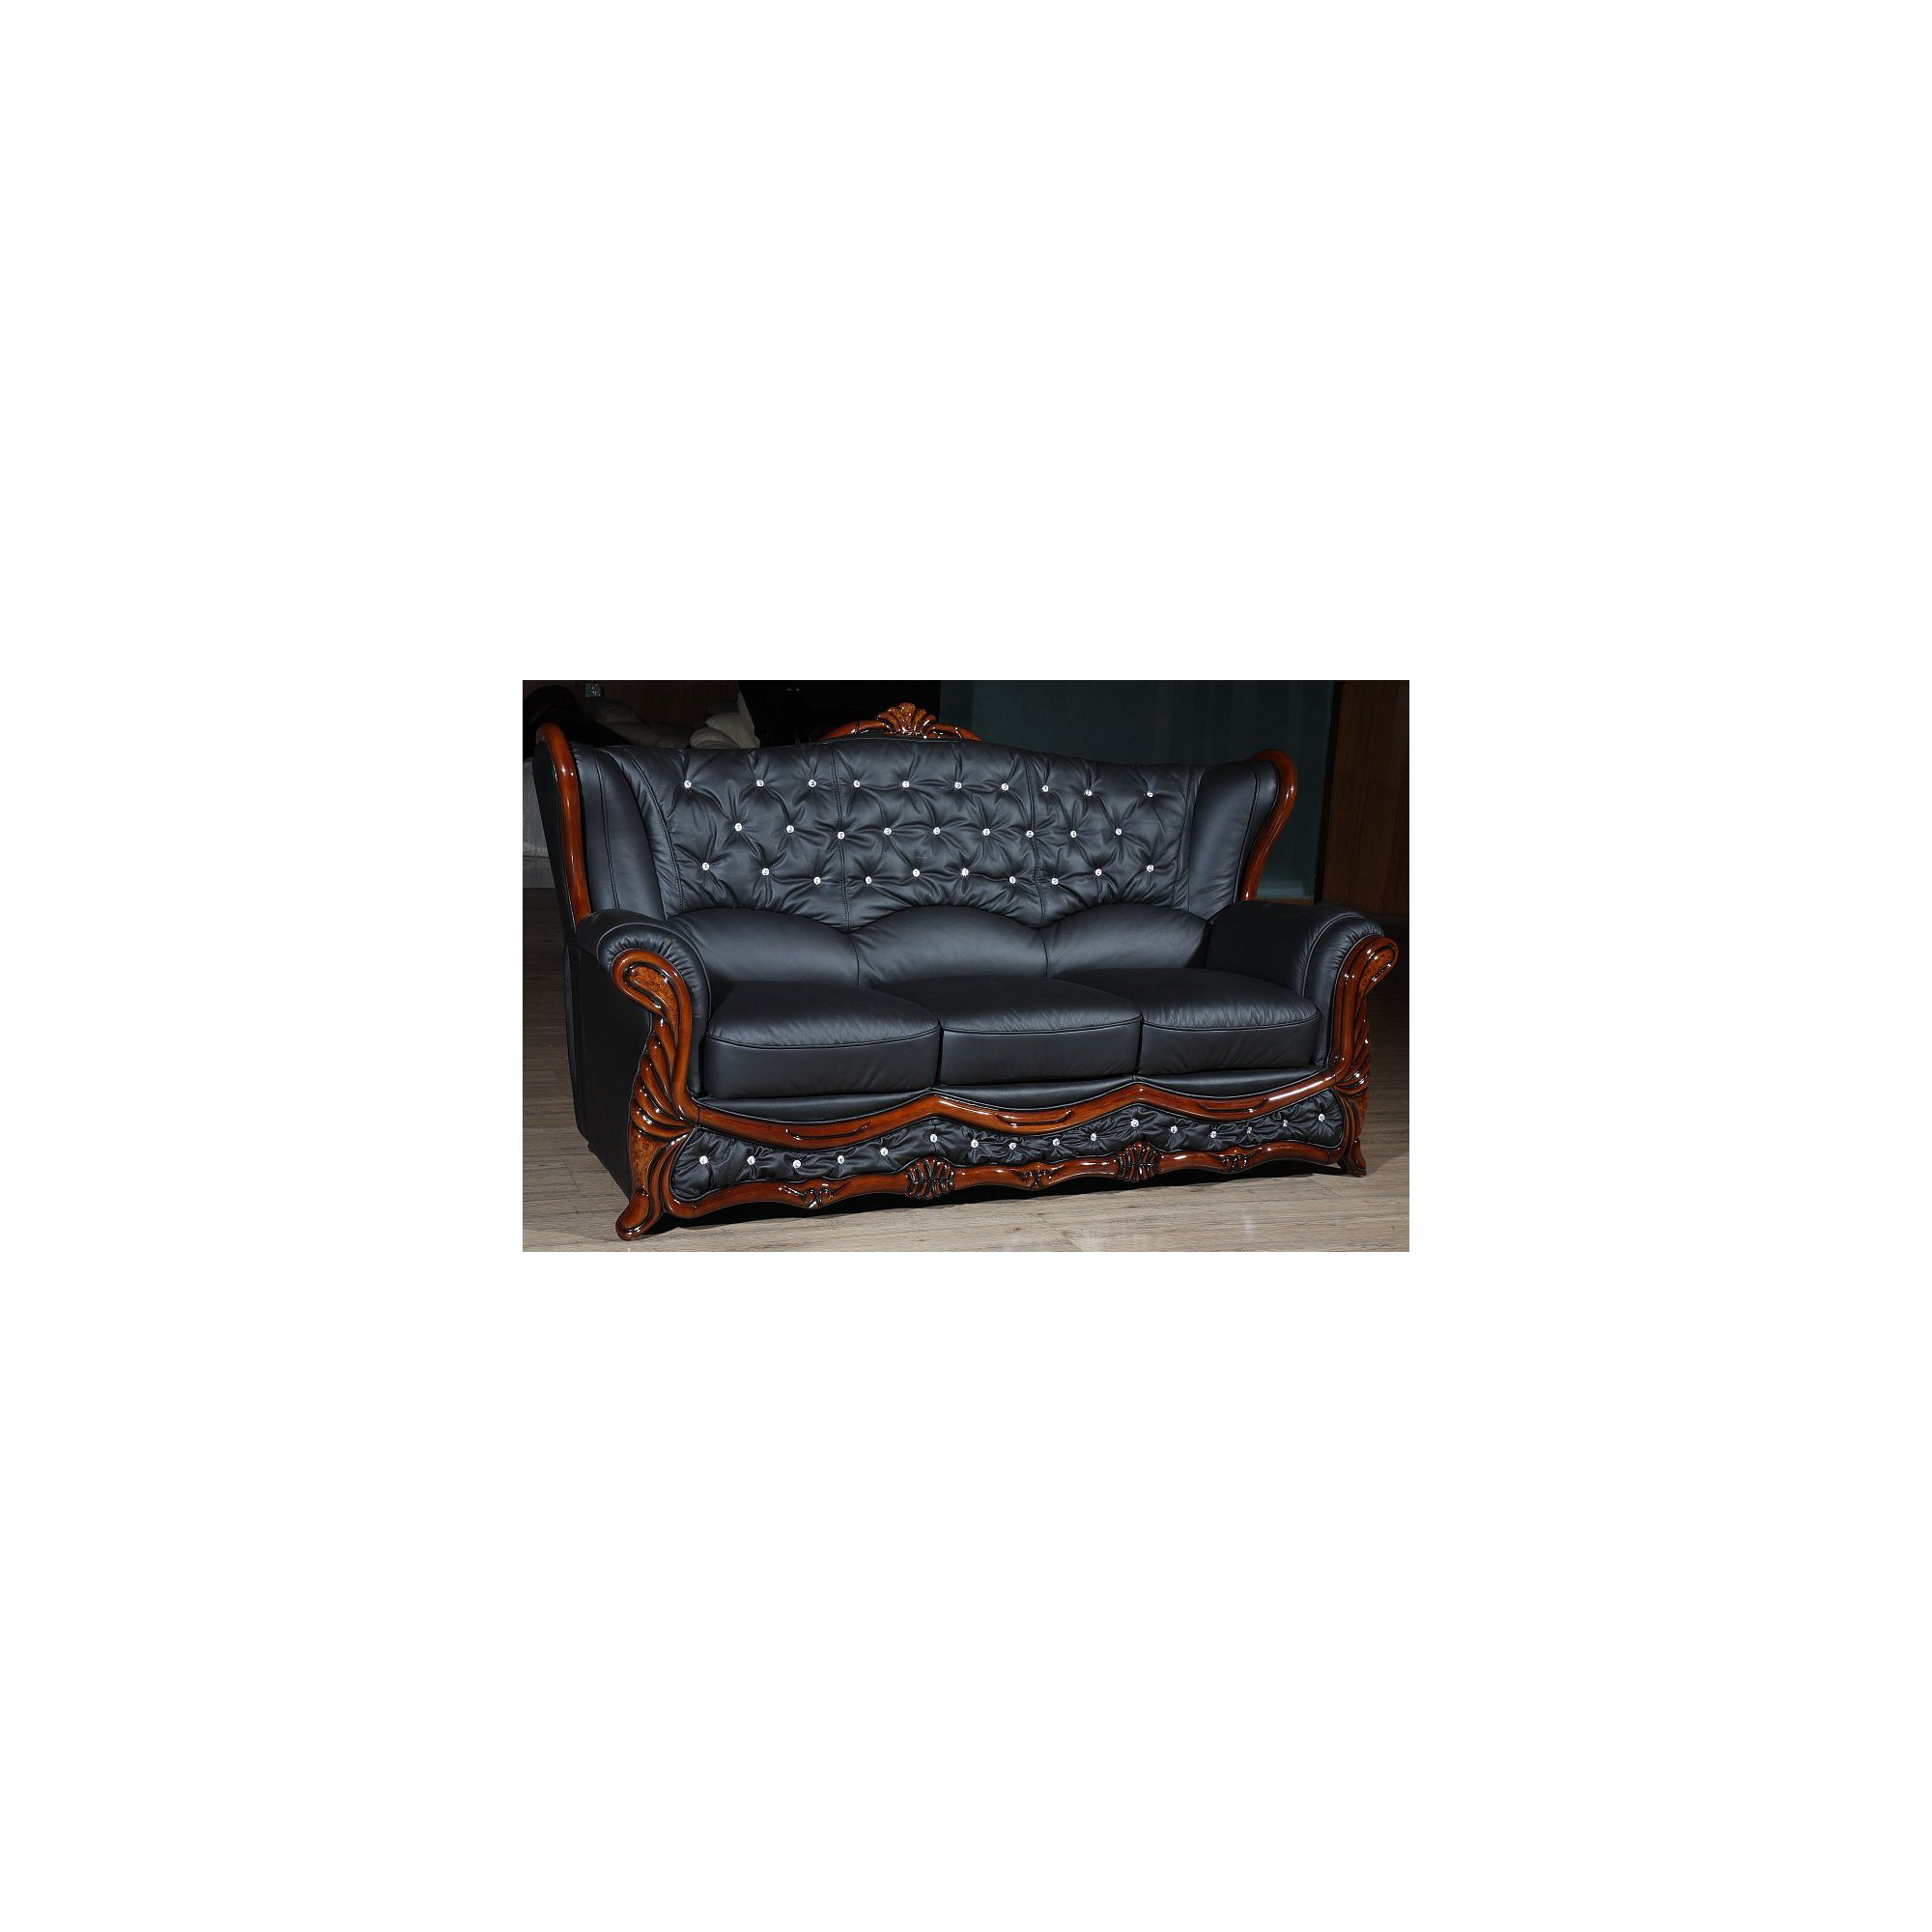 JPL Furniture Christina Leather 3 Seater Sofa with Crystal at Tesco Direct